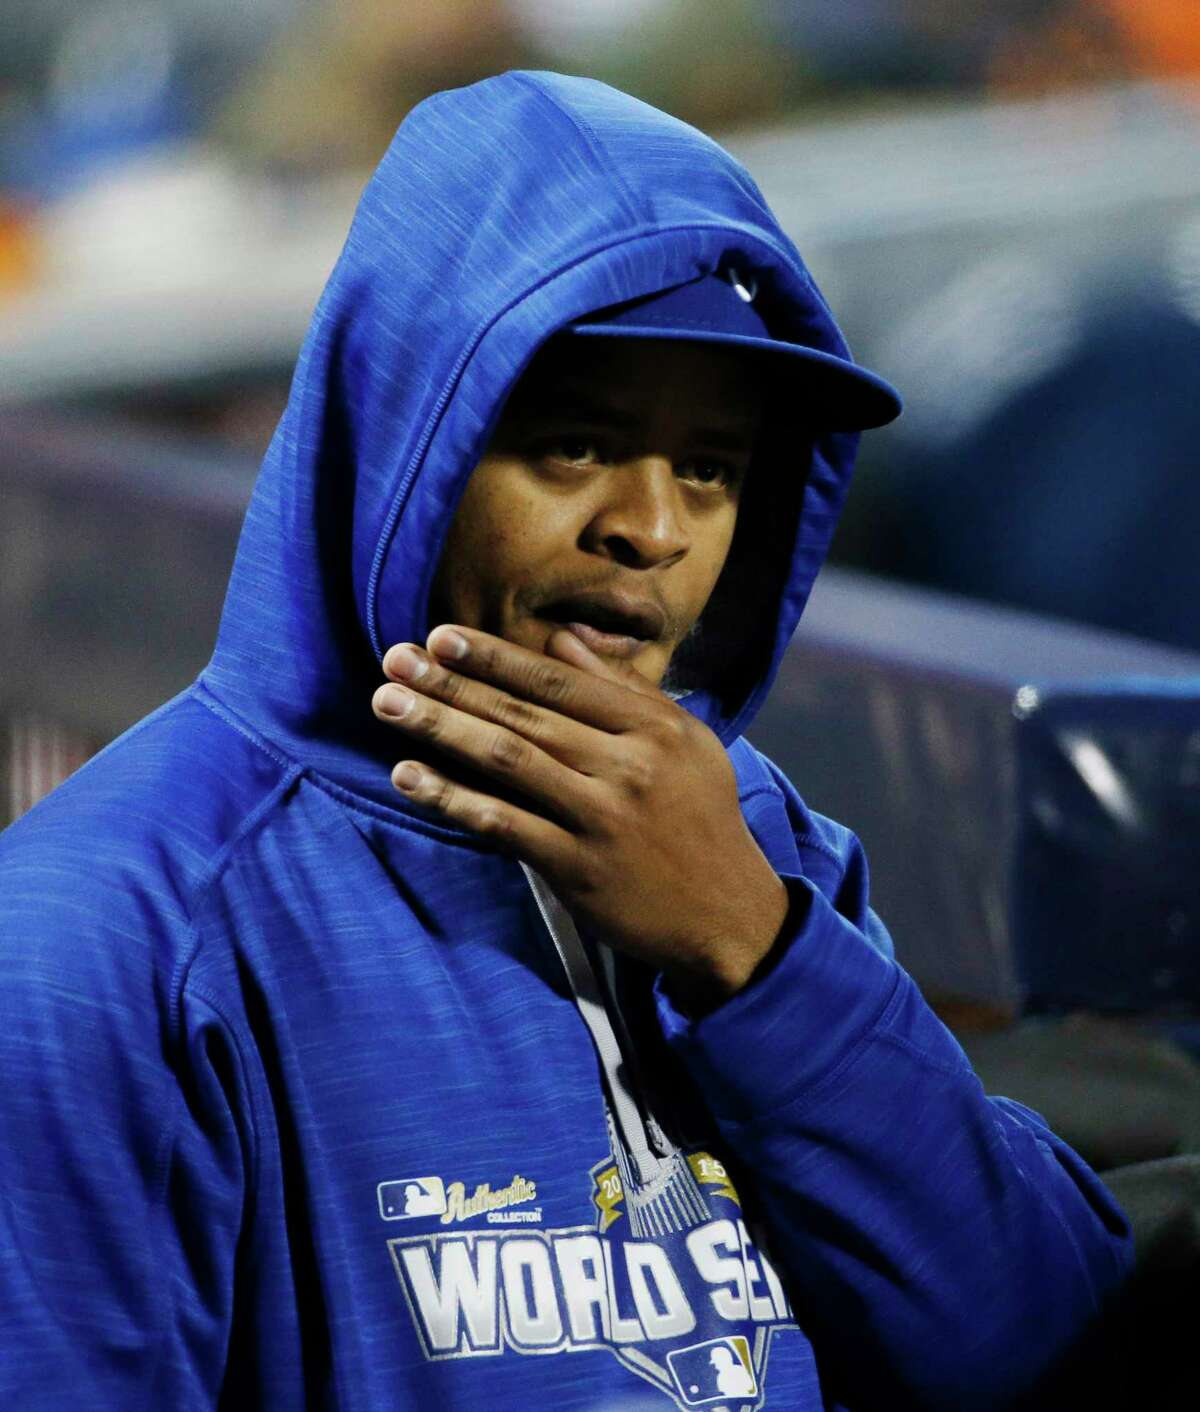 Royals pitcher Edinson Volquez watches his team during the second inning of Game 4 of the World Series on Saturday.